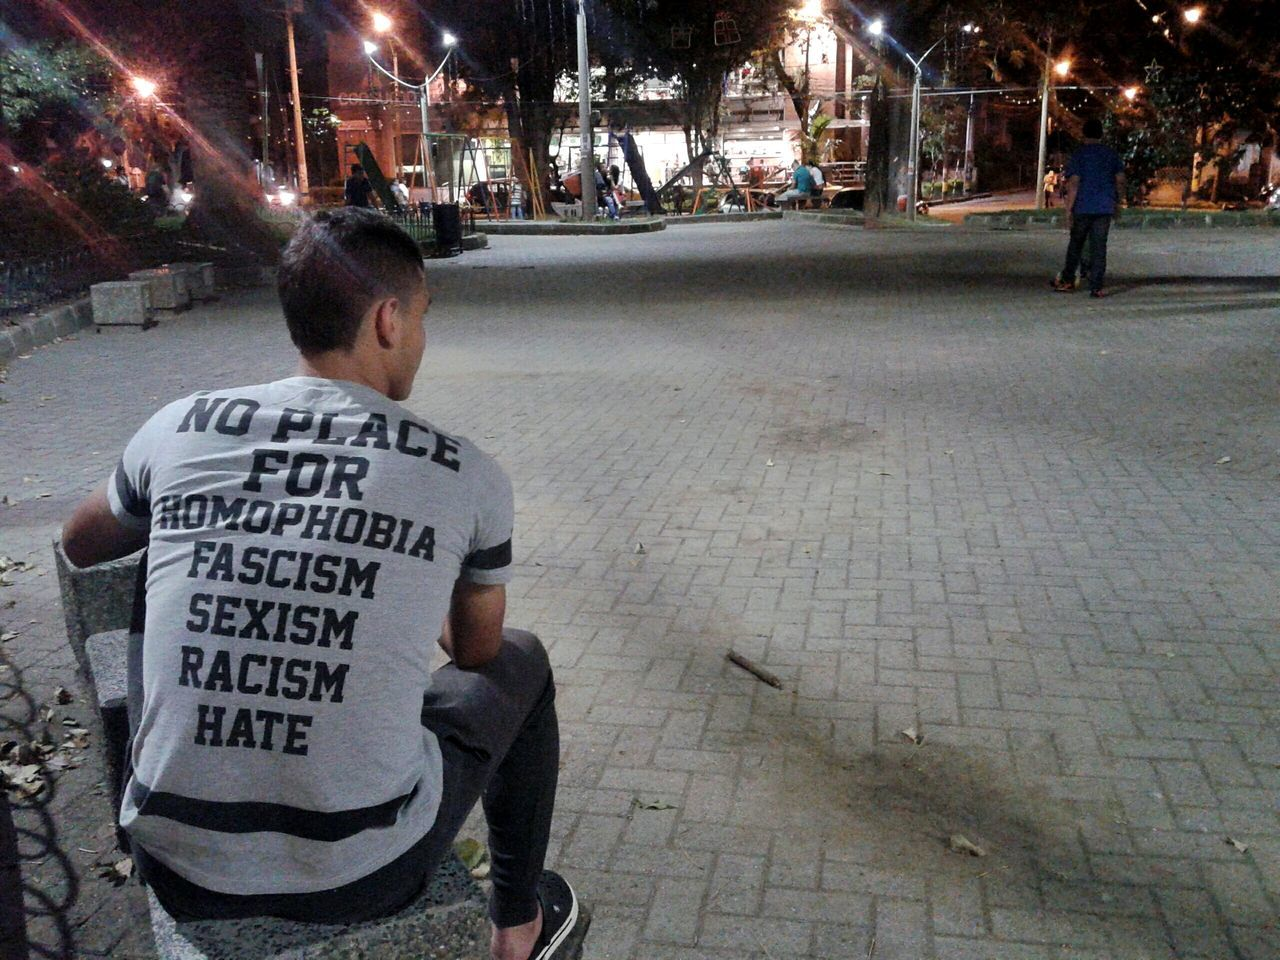 Guy wearing a no hatred tshirt while sitting in a park at night. Equality Equal Rights  No Hate Park - Man Made Space Person Man Tshirt Words Of Wisdom... Words Power Of Words  Back Of The Head Night Photography Street Photography At Night One Person Sitting Outside Sitting Alone Sitting Park Life Equal Love EqualityForAll Gay Rights Homophobia Sexism Racism